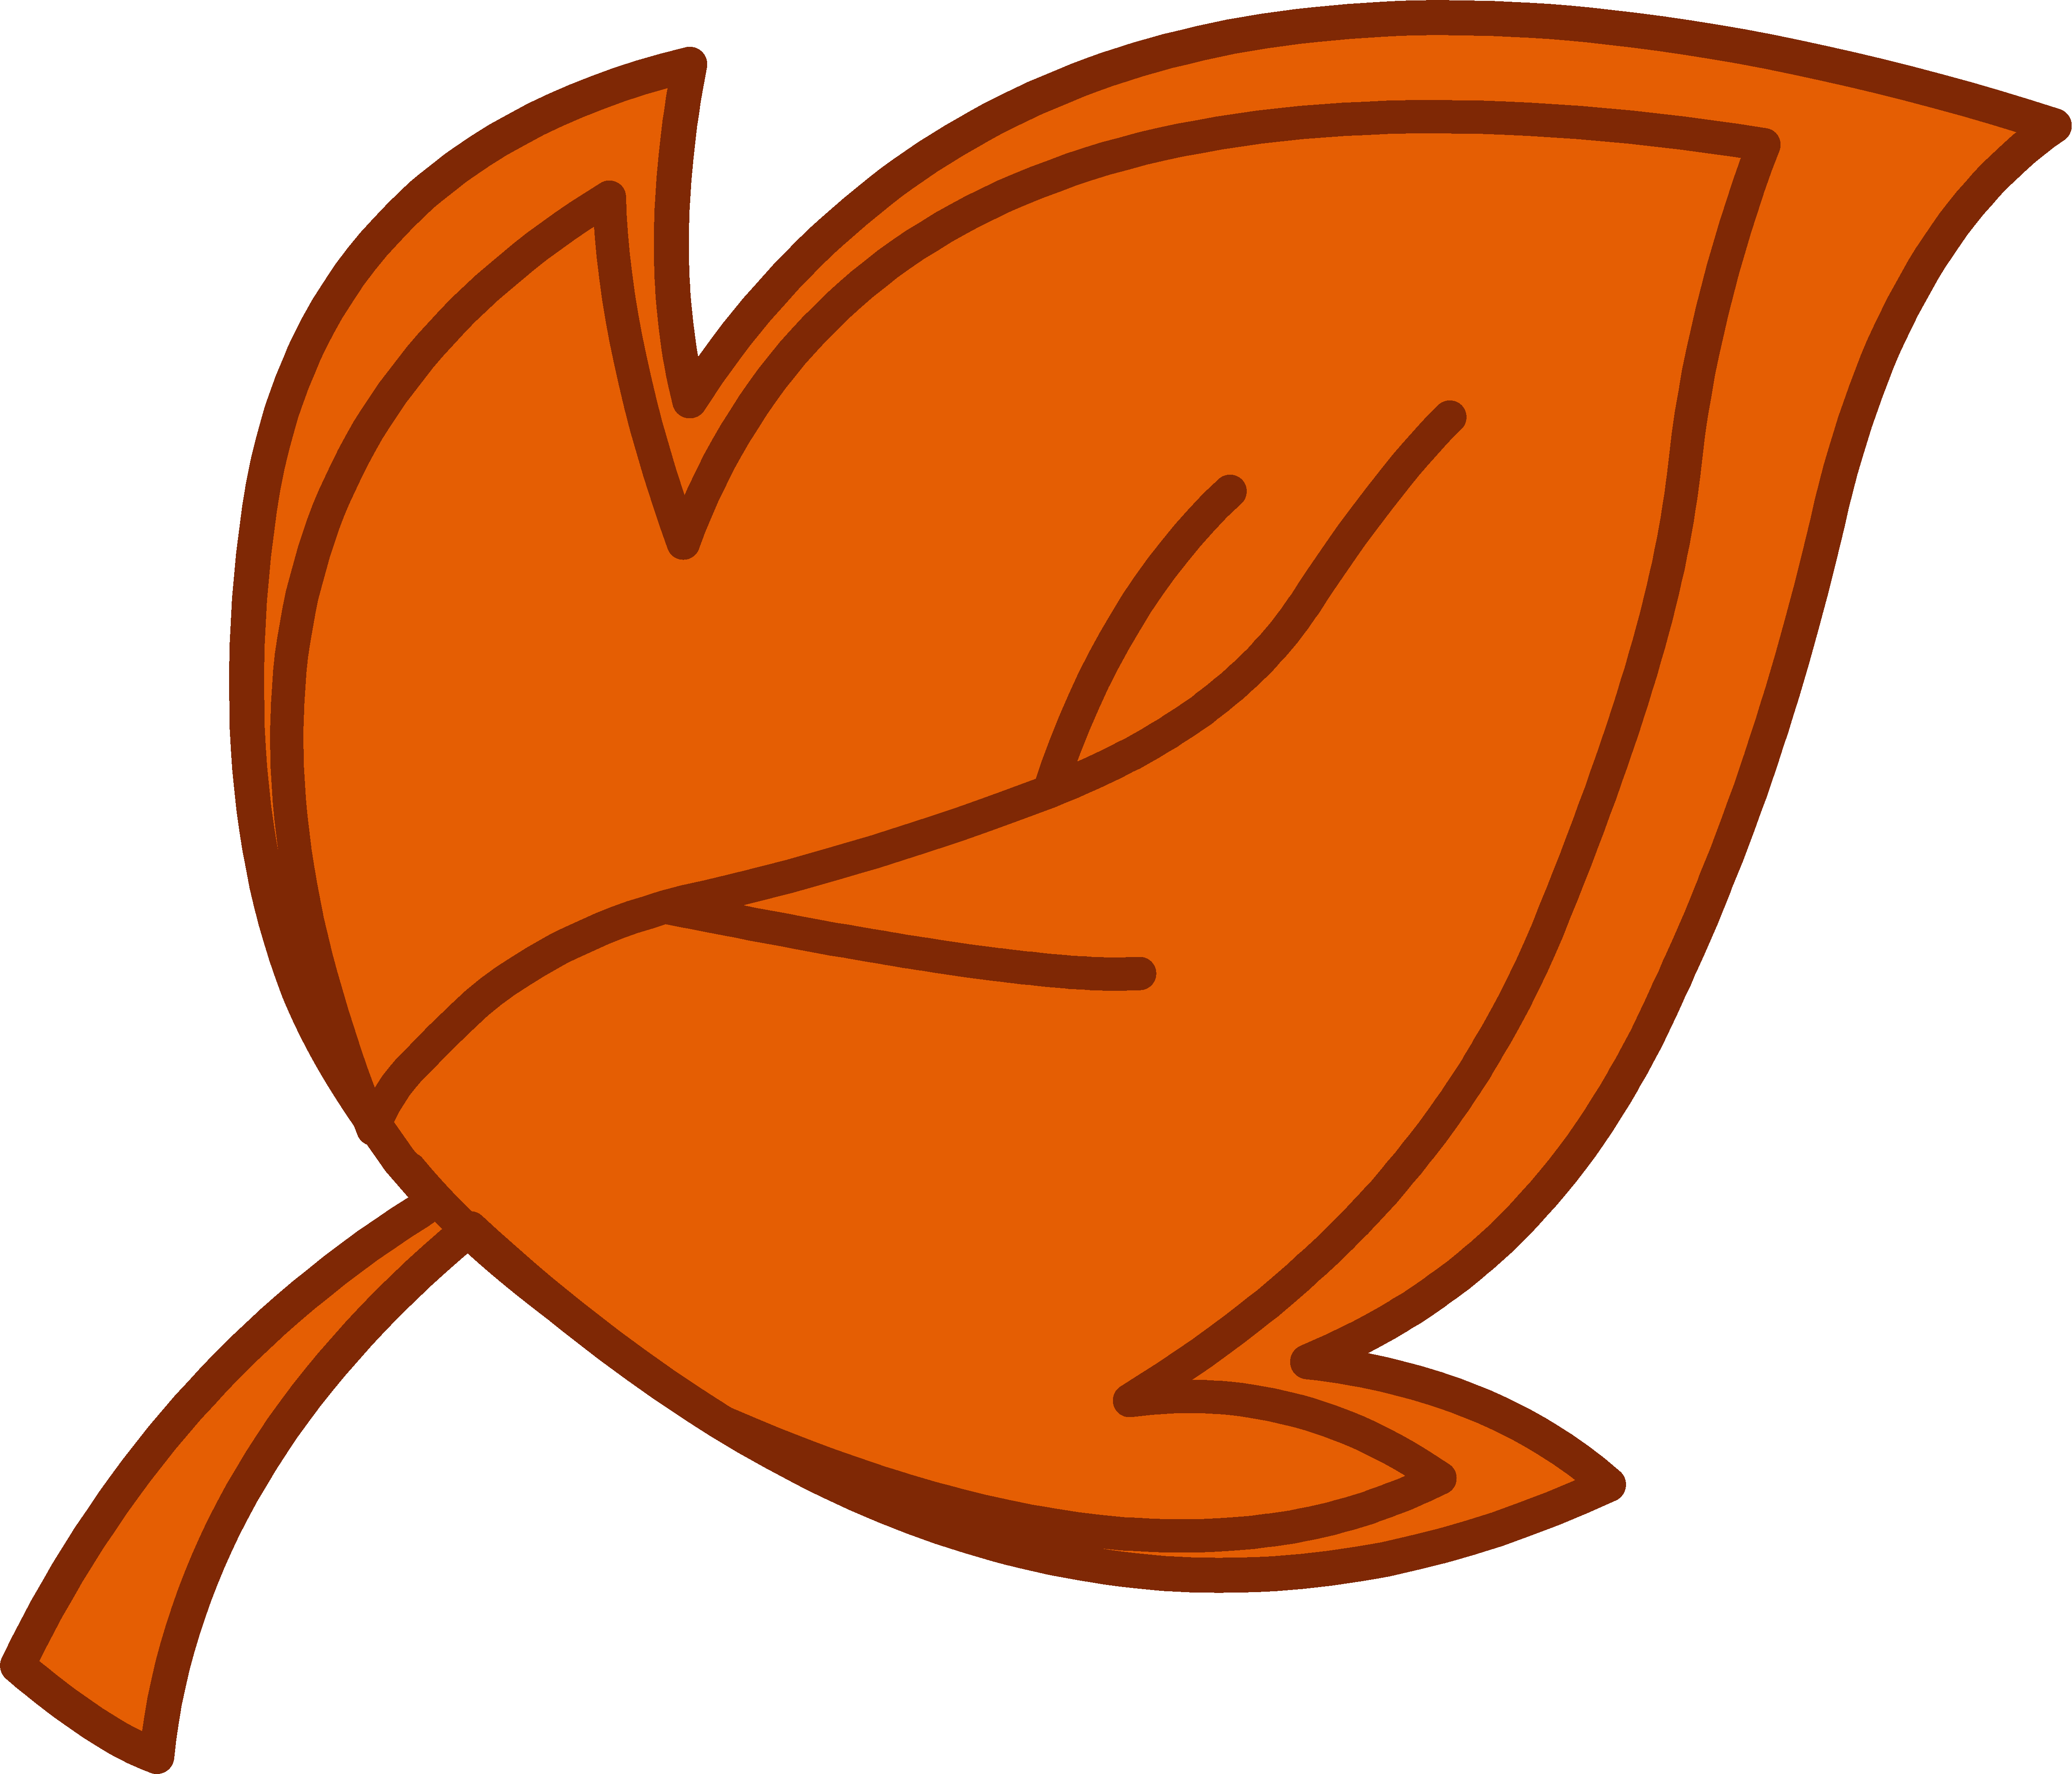 collection of leaves. Clipart hammer orange